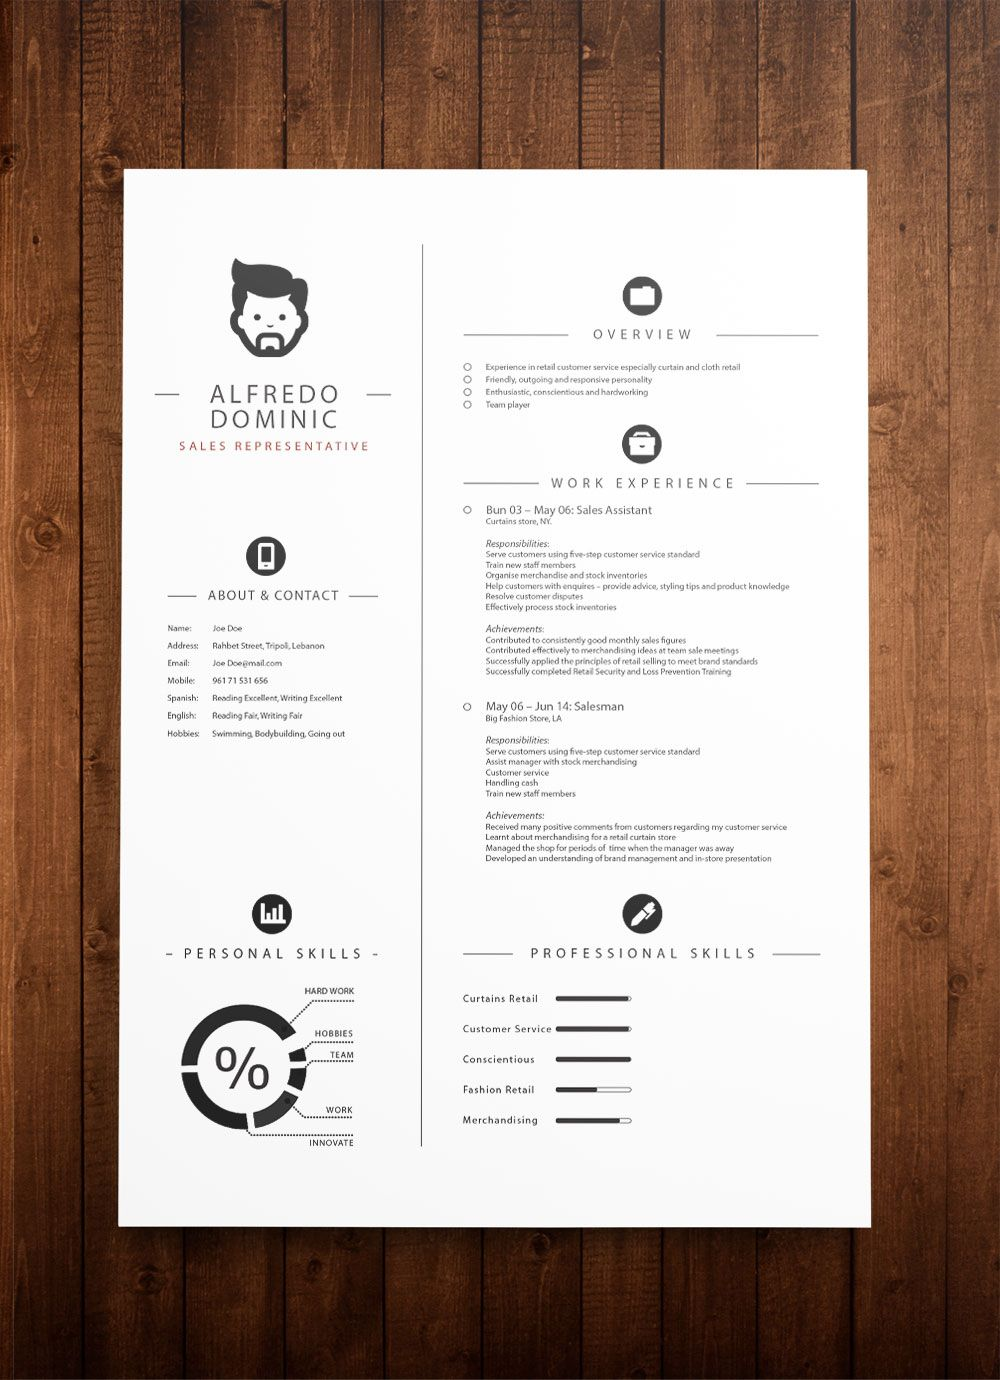 plantilla cv gratis cosas que ponerse beautiful pretty nice and simple curriculum vitae template this resume is created in photoshop and easy to work so go check it out and enjoy